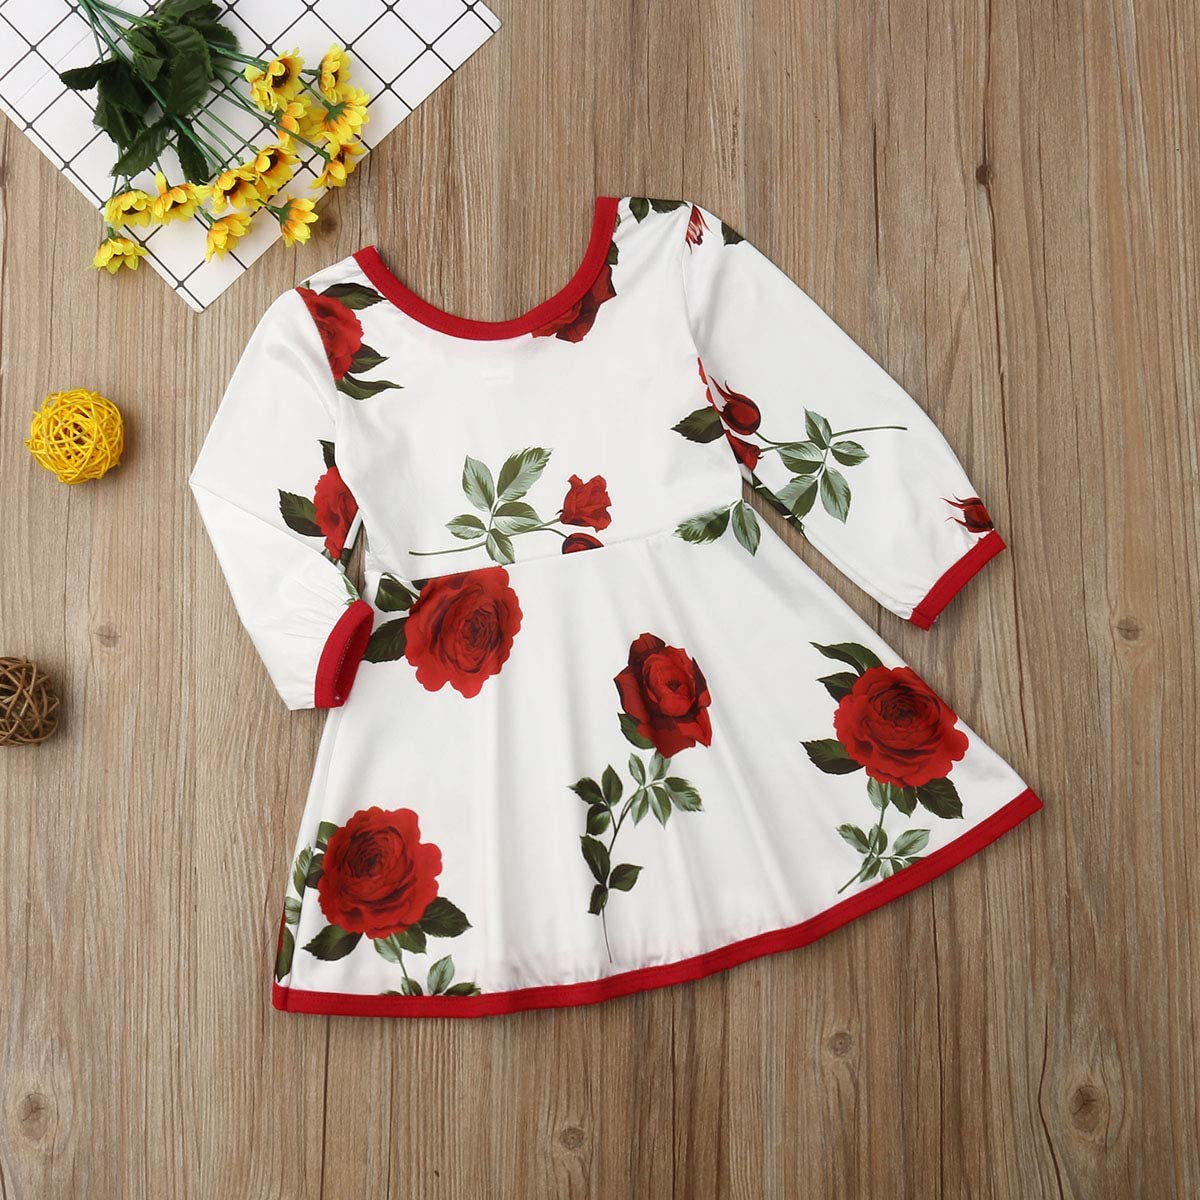 Lamuusaa Baby Kid Girls Floral Dress Long Sleeve Party Wedding Pageant Princess Dresses Fall Winter Clothes 0-5Y